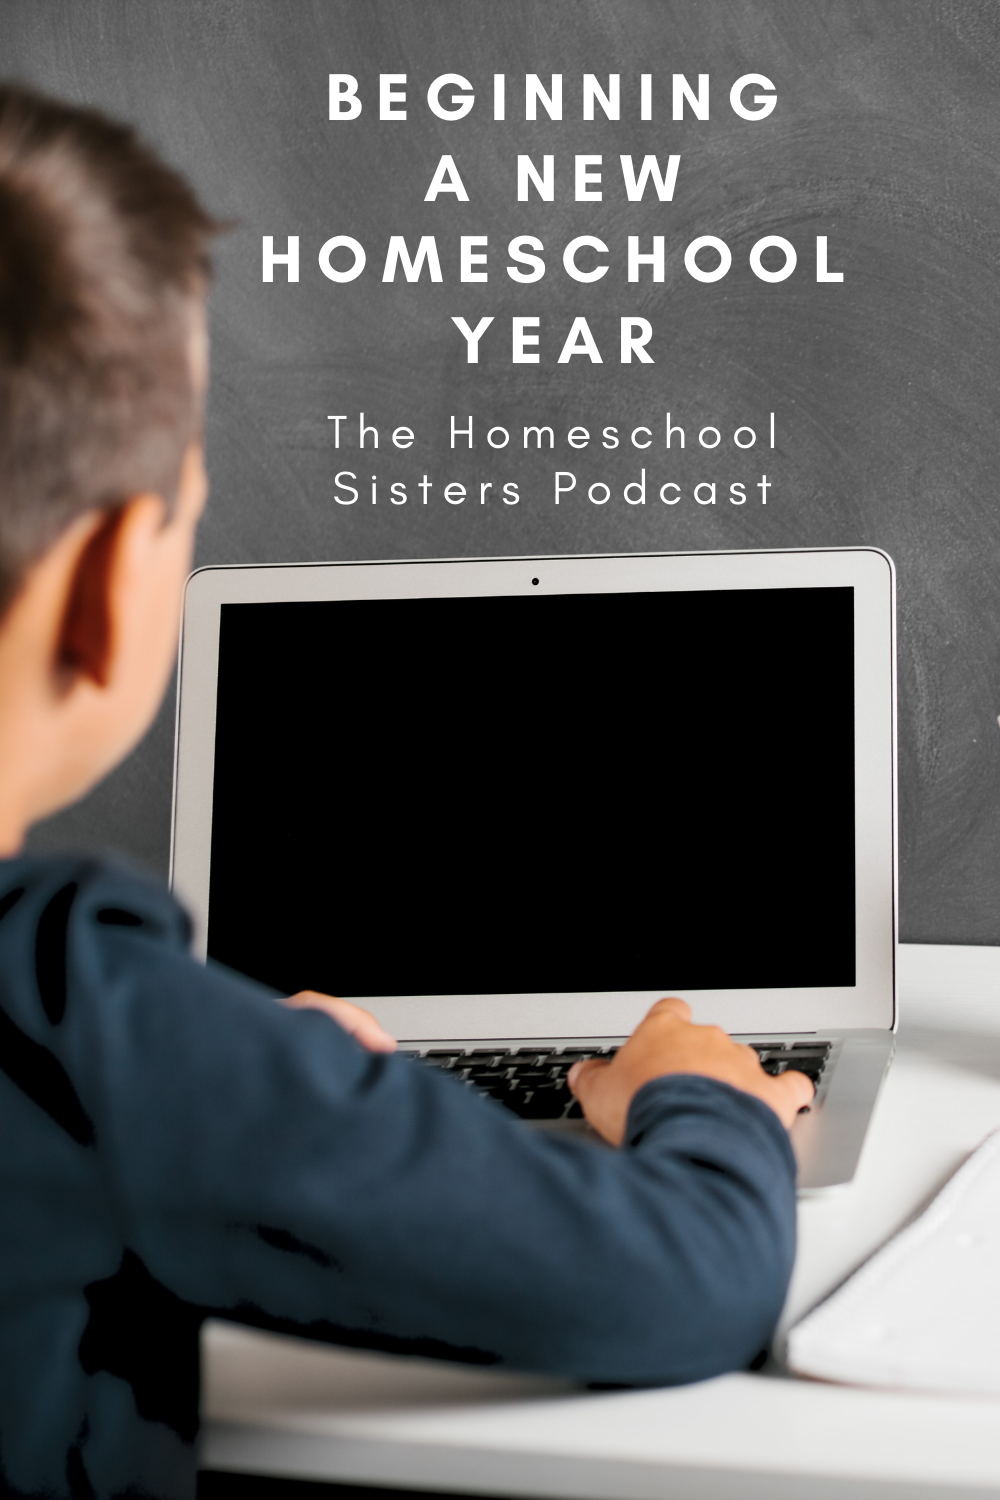 Beginning a New Homeschool Year [Episode 108] | The Homeschool Sisters Podcast